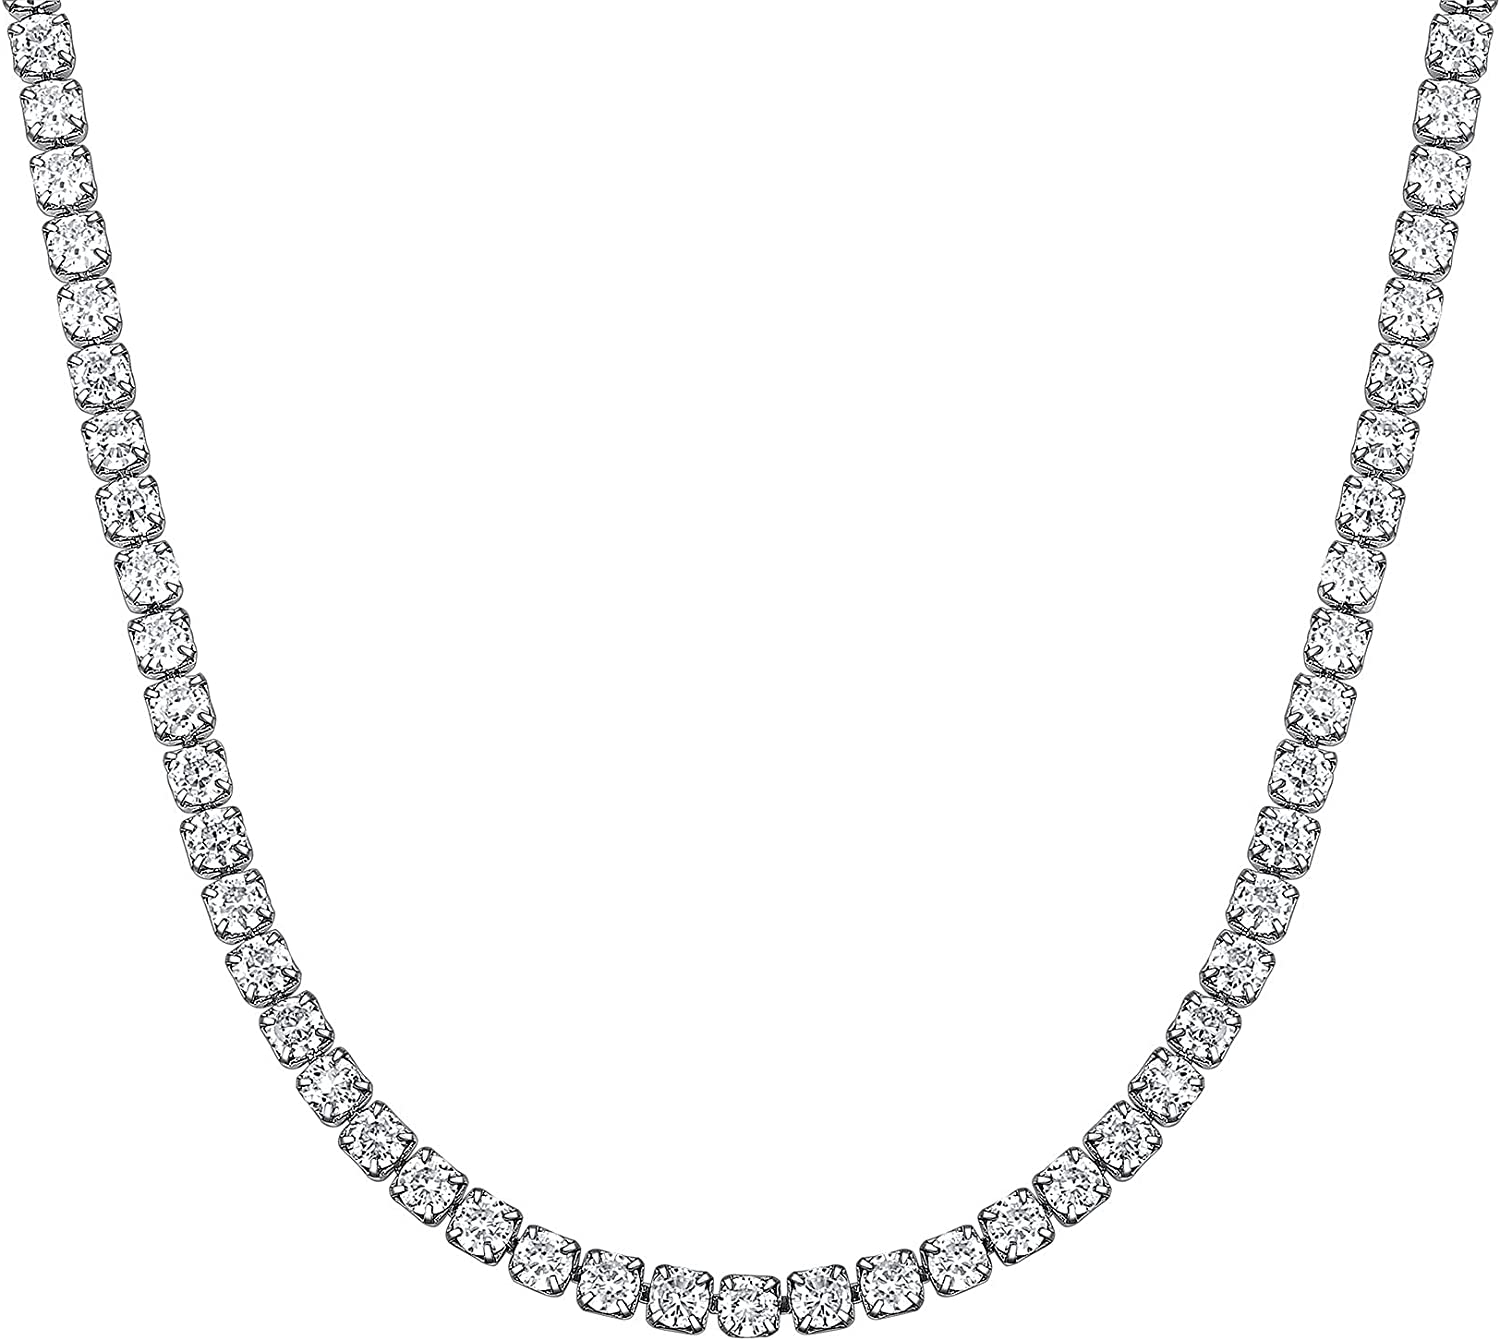 Richsteel Clear/Black 3mm Cubic Zirconia Tennis Chain Necklace for Women and Men 16/18 Inch Stainless Steel/Gold Plated Jewelry(with Gift Box)